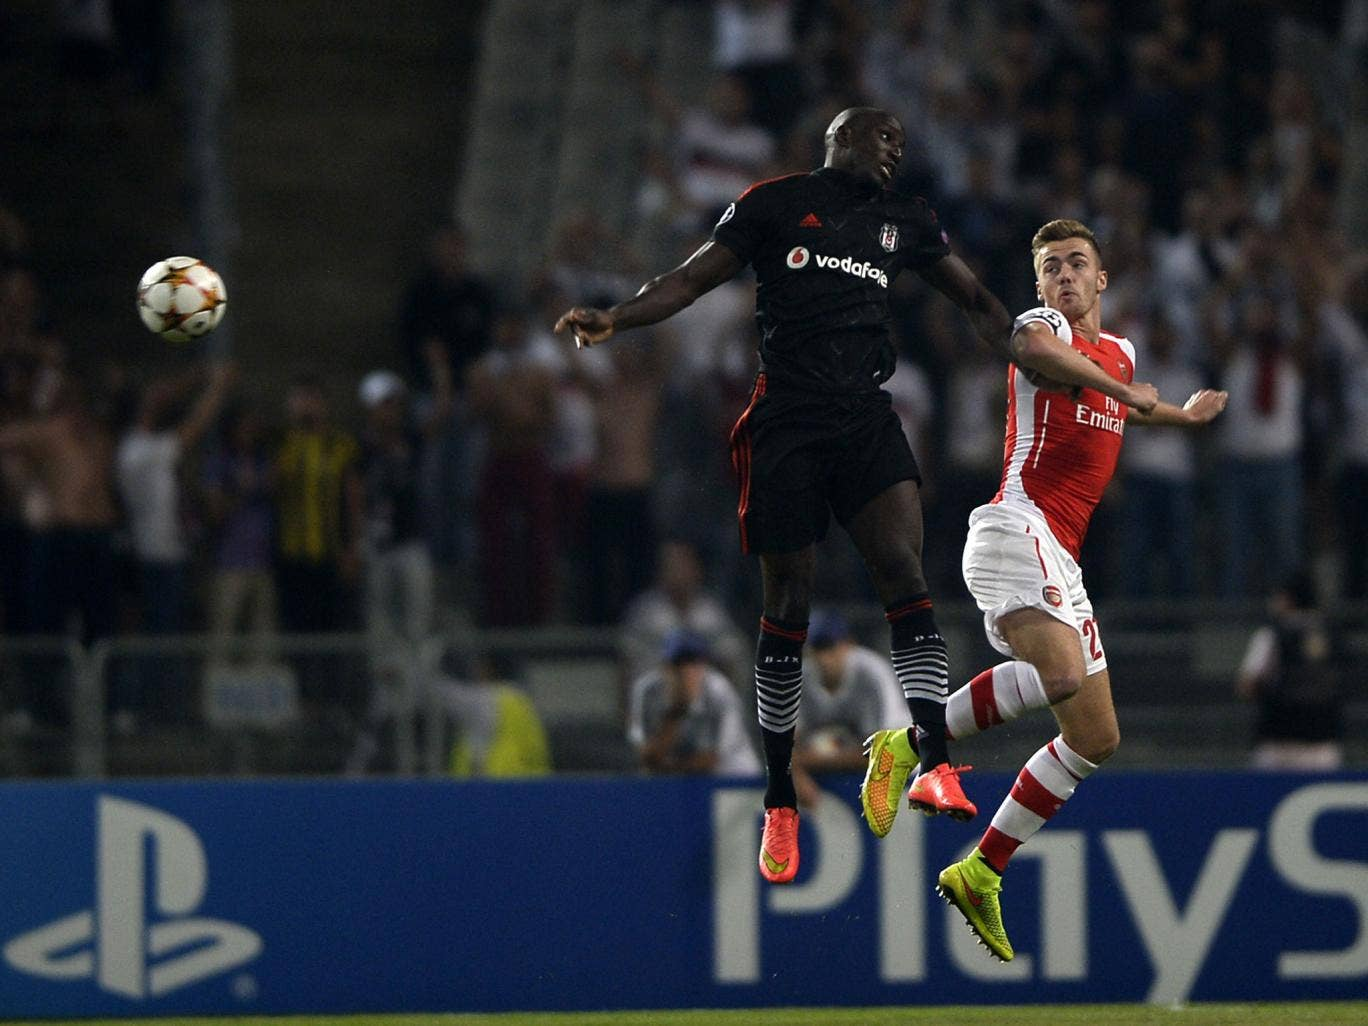 Calum Chambers challenges Demba Ba for the ball